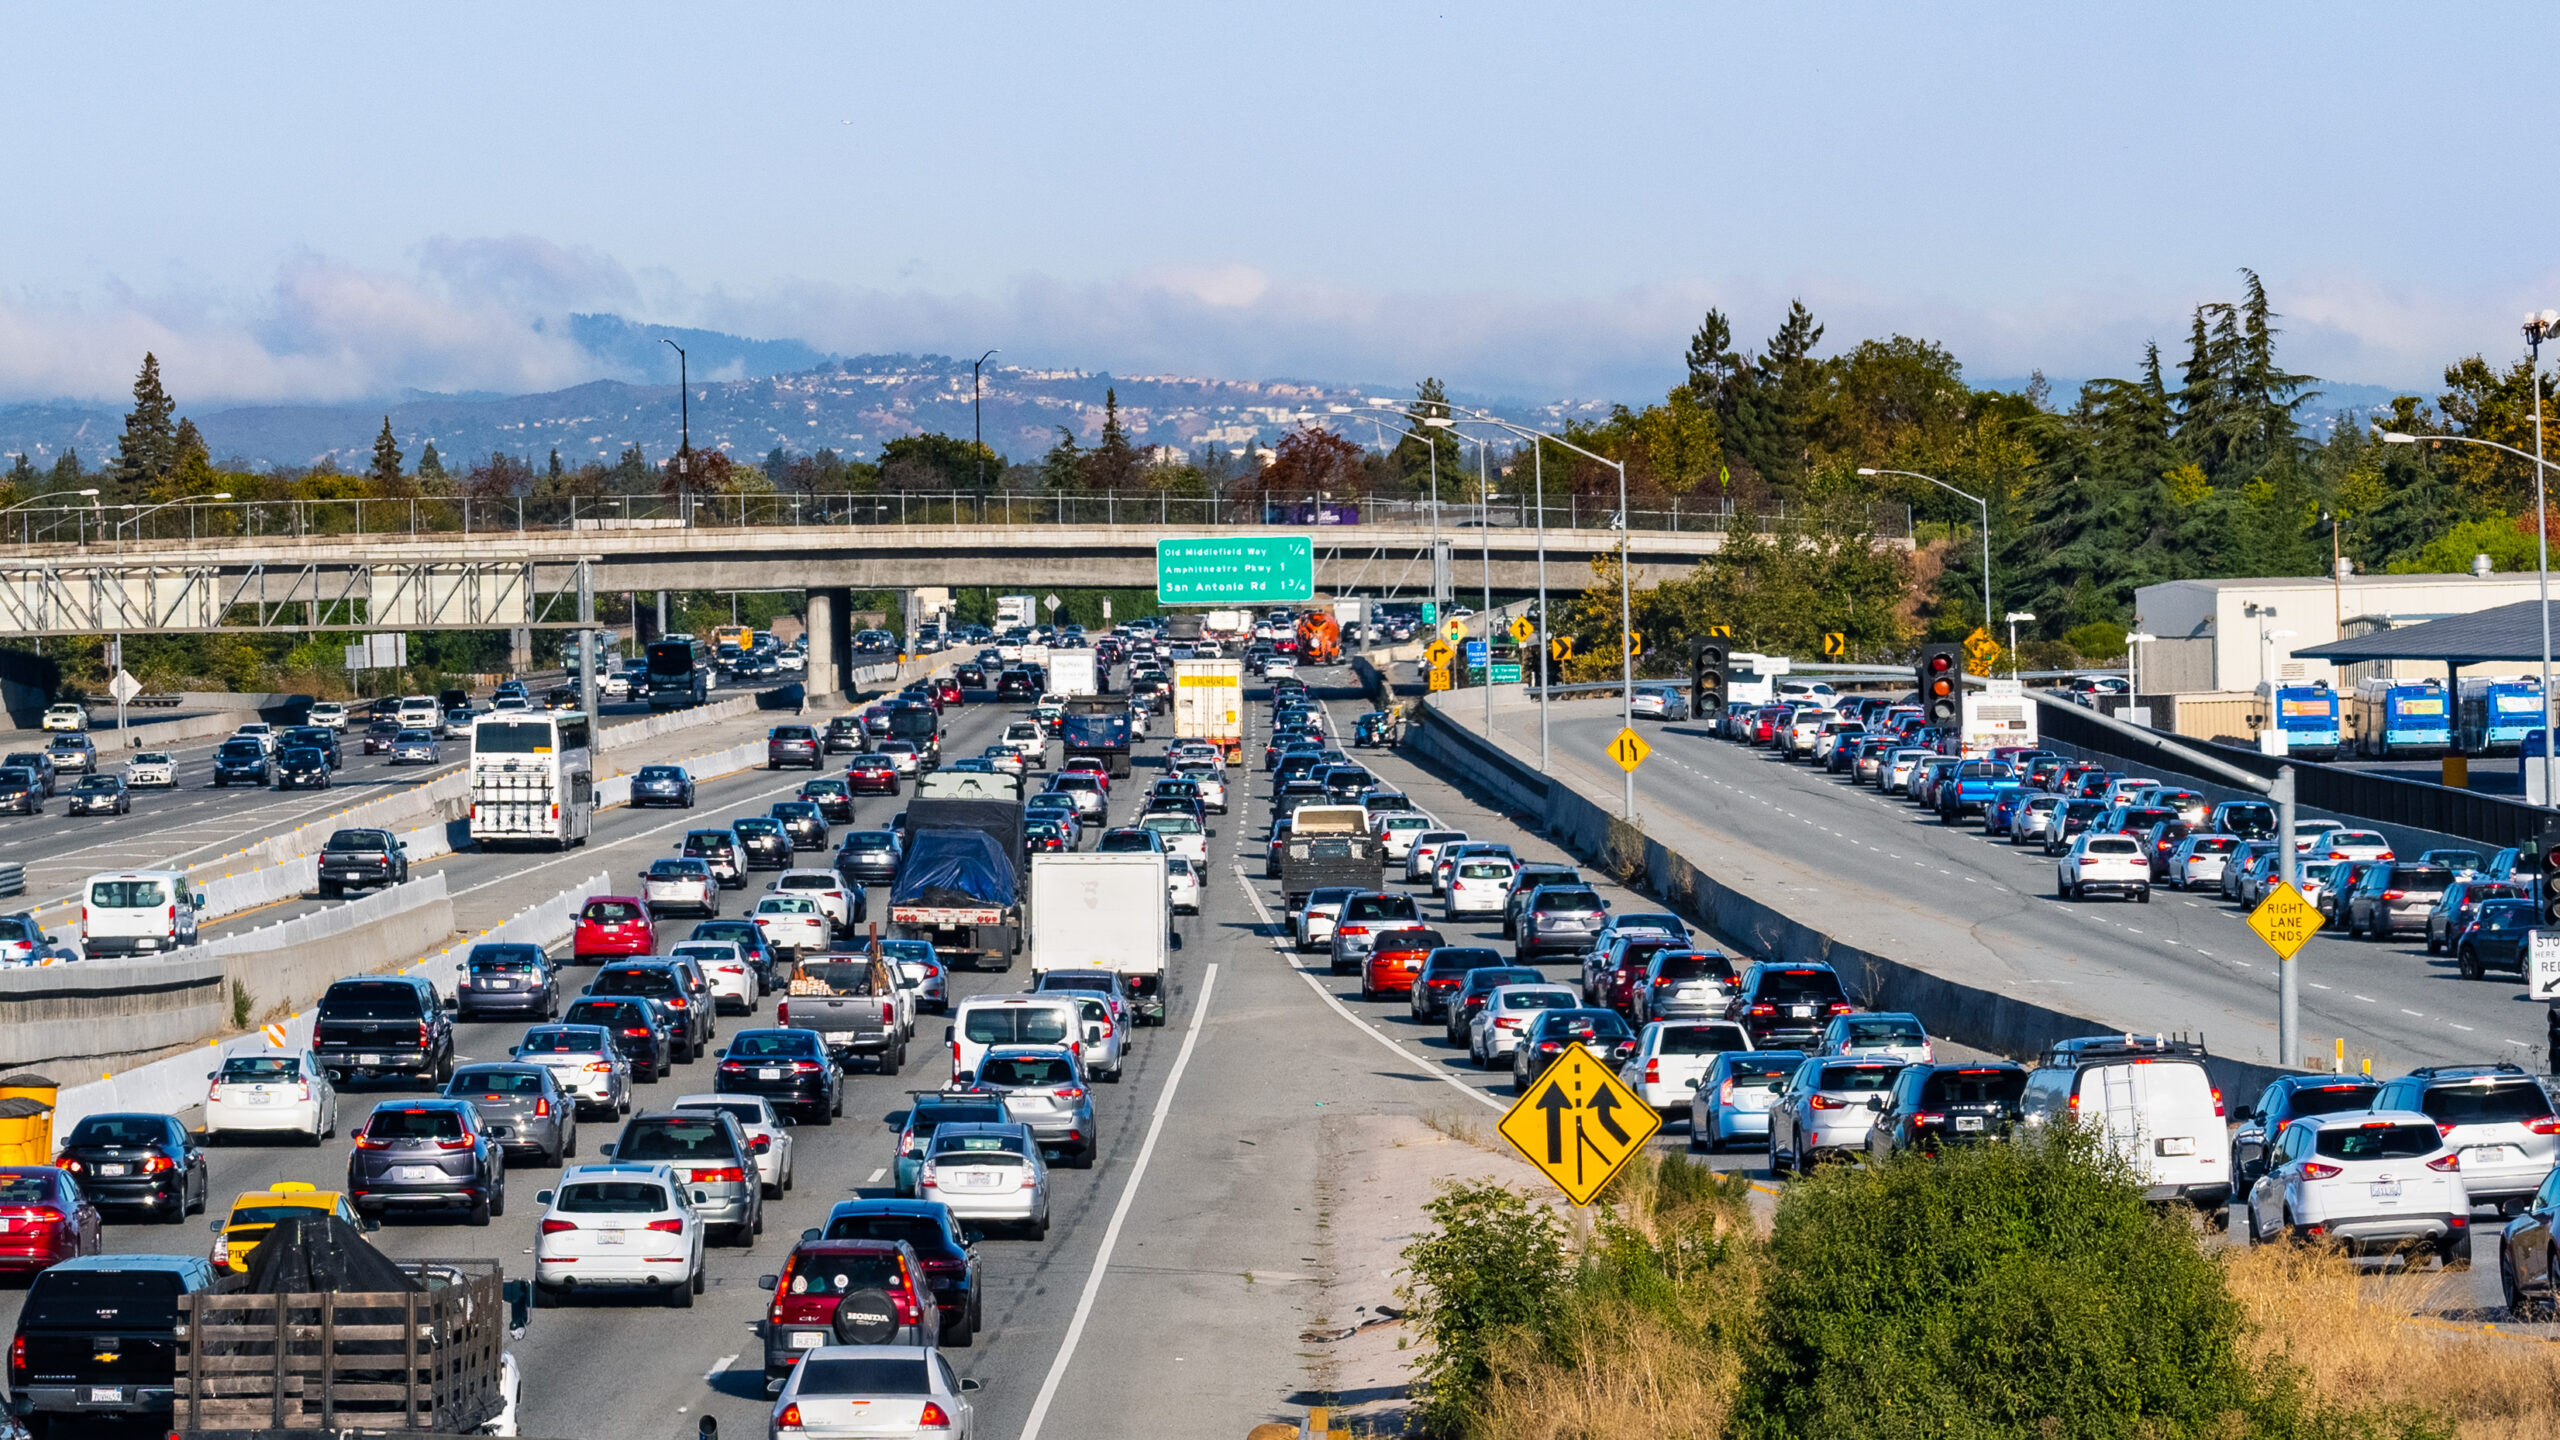 Silicon Valley California Highway traffic